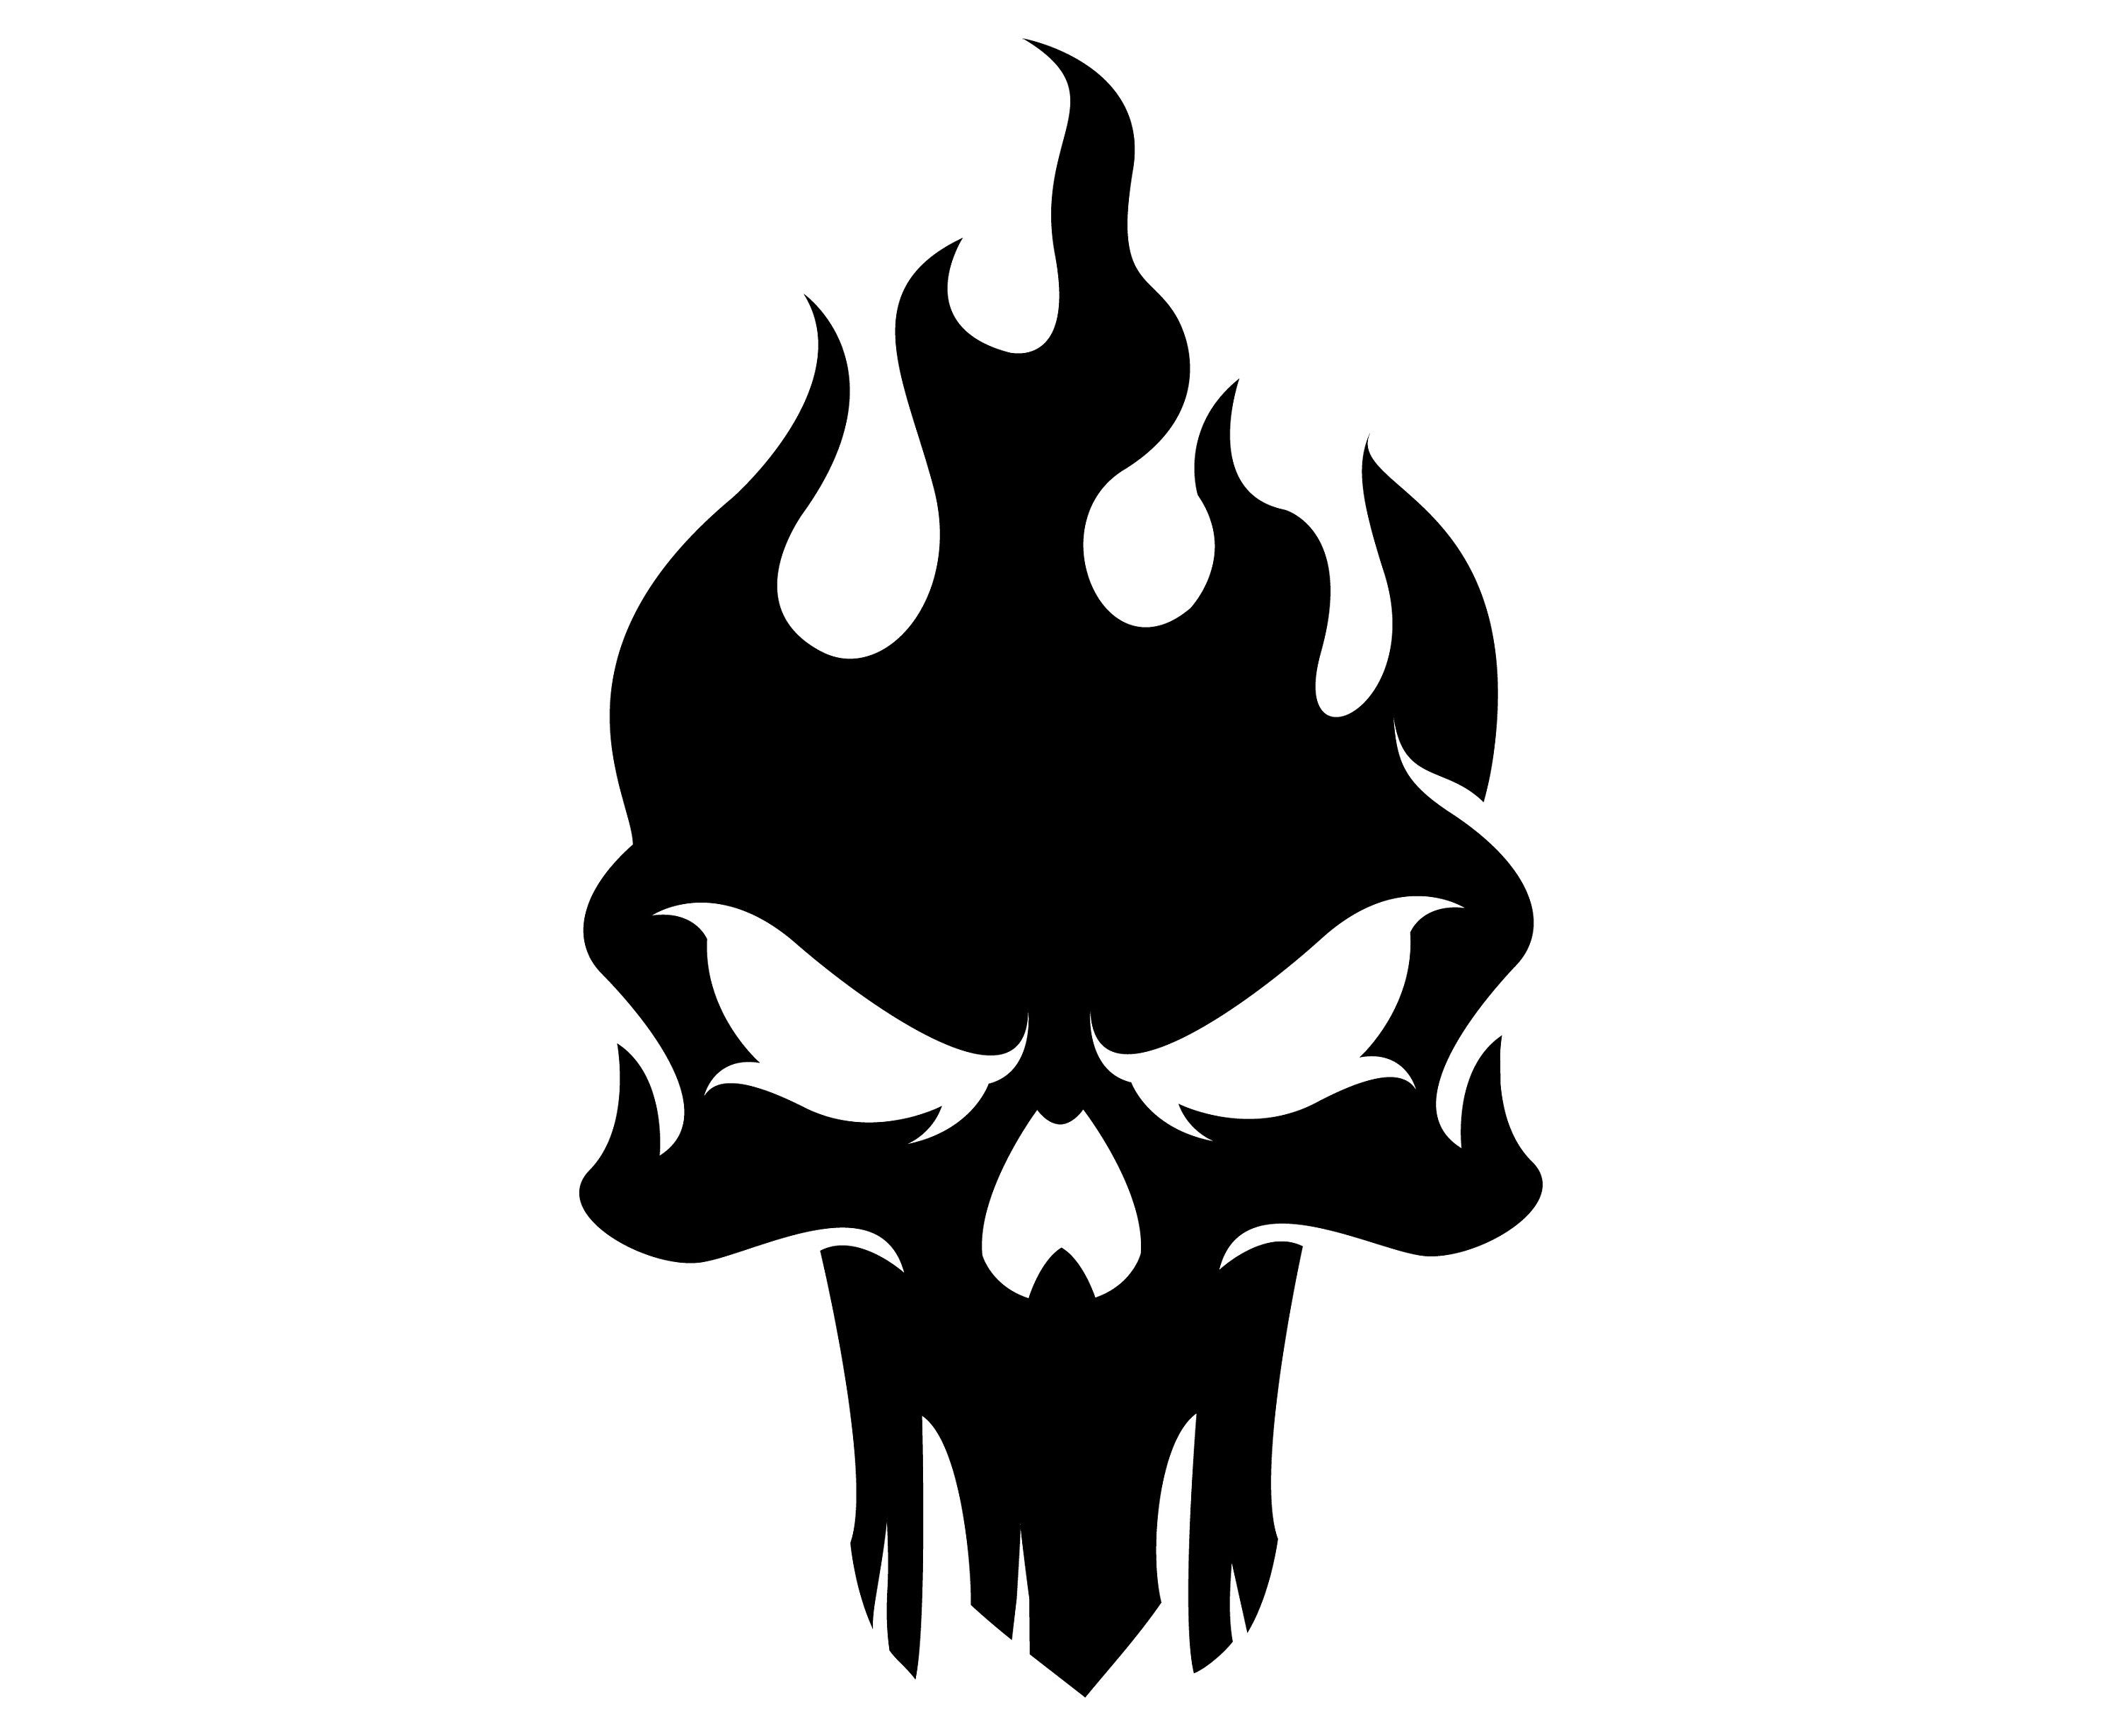 Skull, Flame, Fire, Silhouette,SVG,Graphics,Illustration